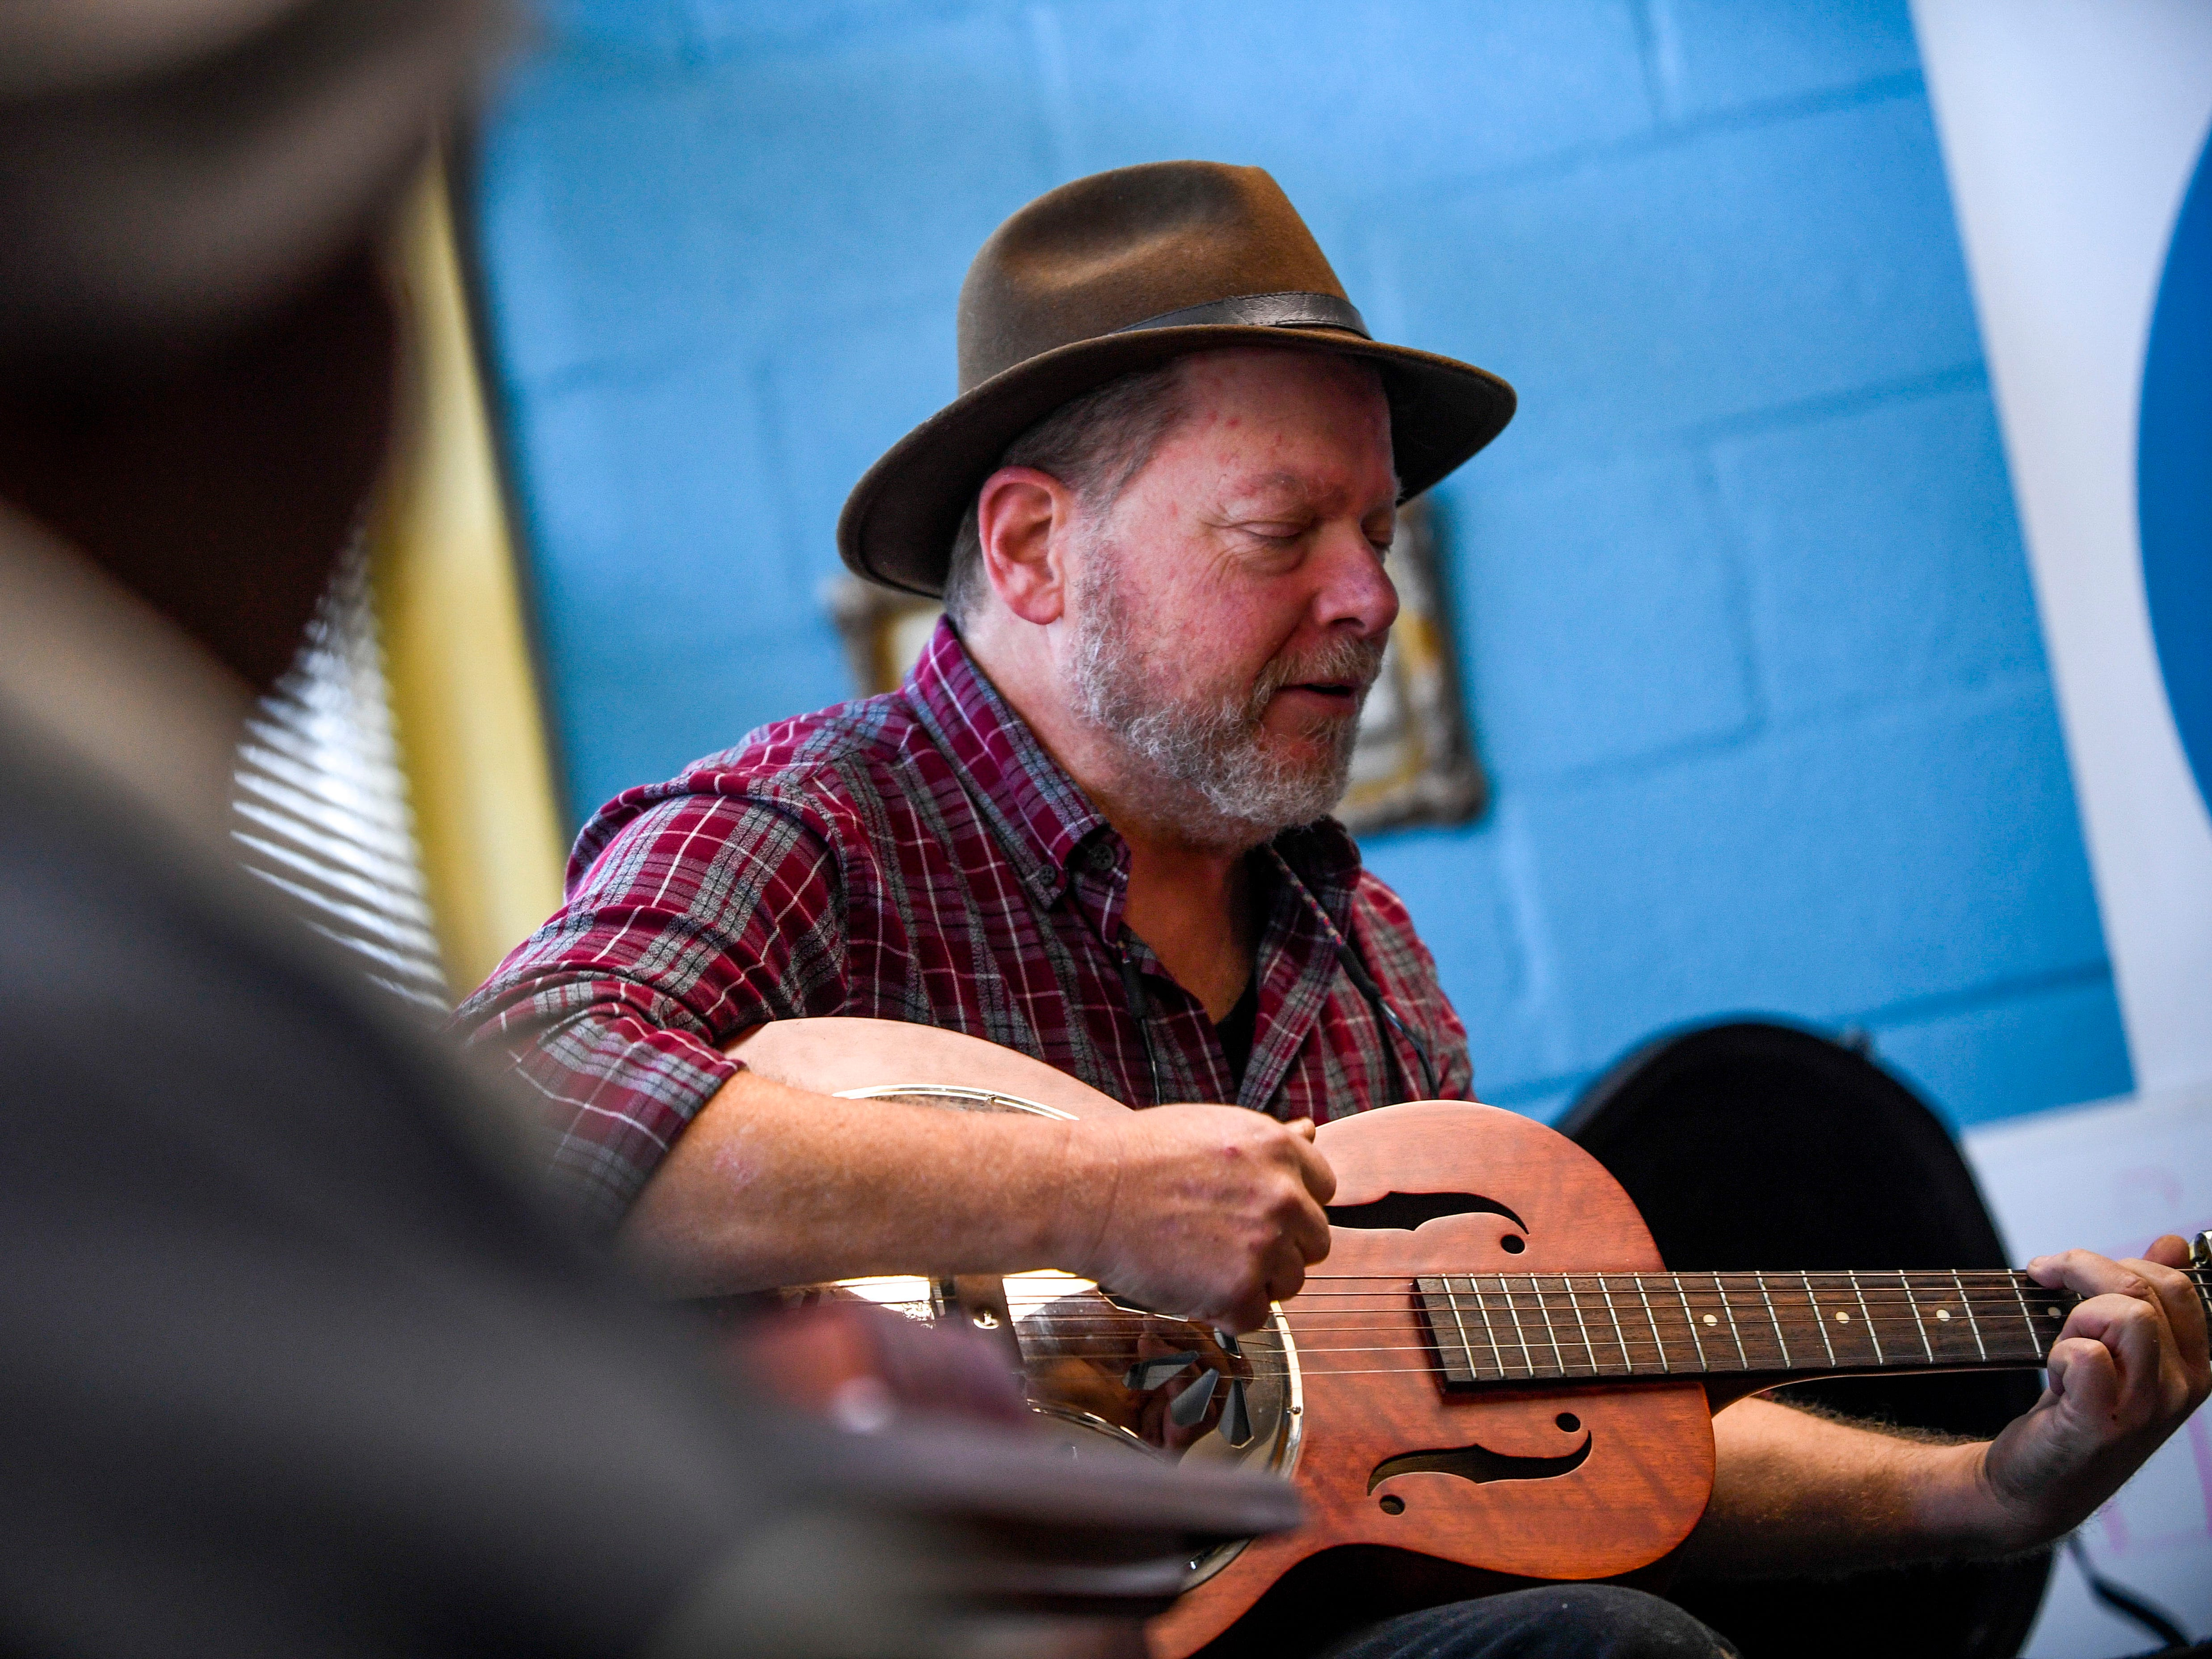 Lee Gaugh, director of Safe Harbor, sings praise songs before serving food at the annual Thanksgiving meal put on by Safe Harbor Day Mission in Jackson, Tenn., on Wednesday, Nov. 21, 2018.